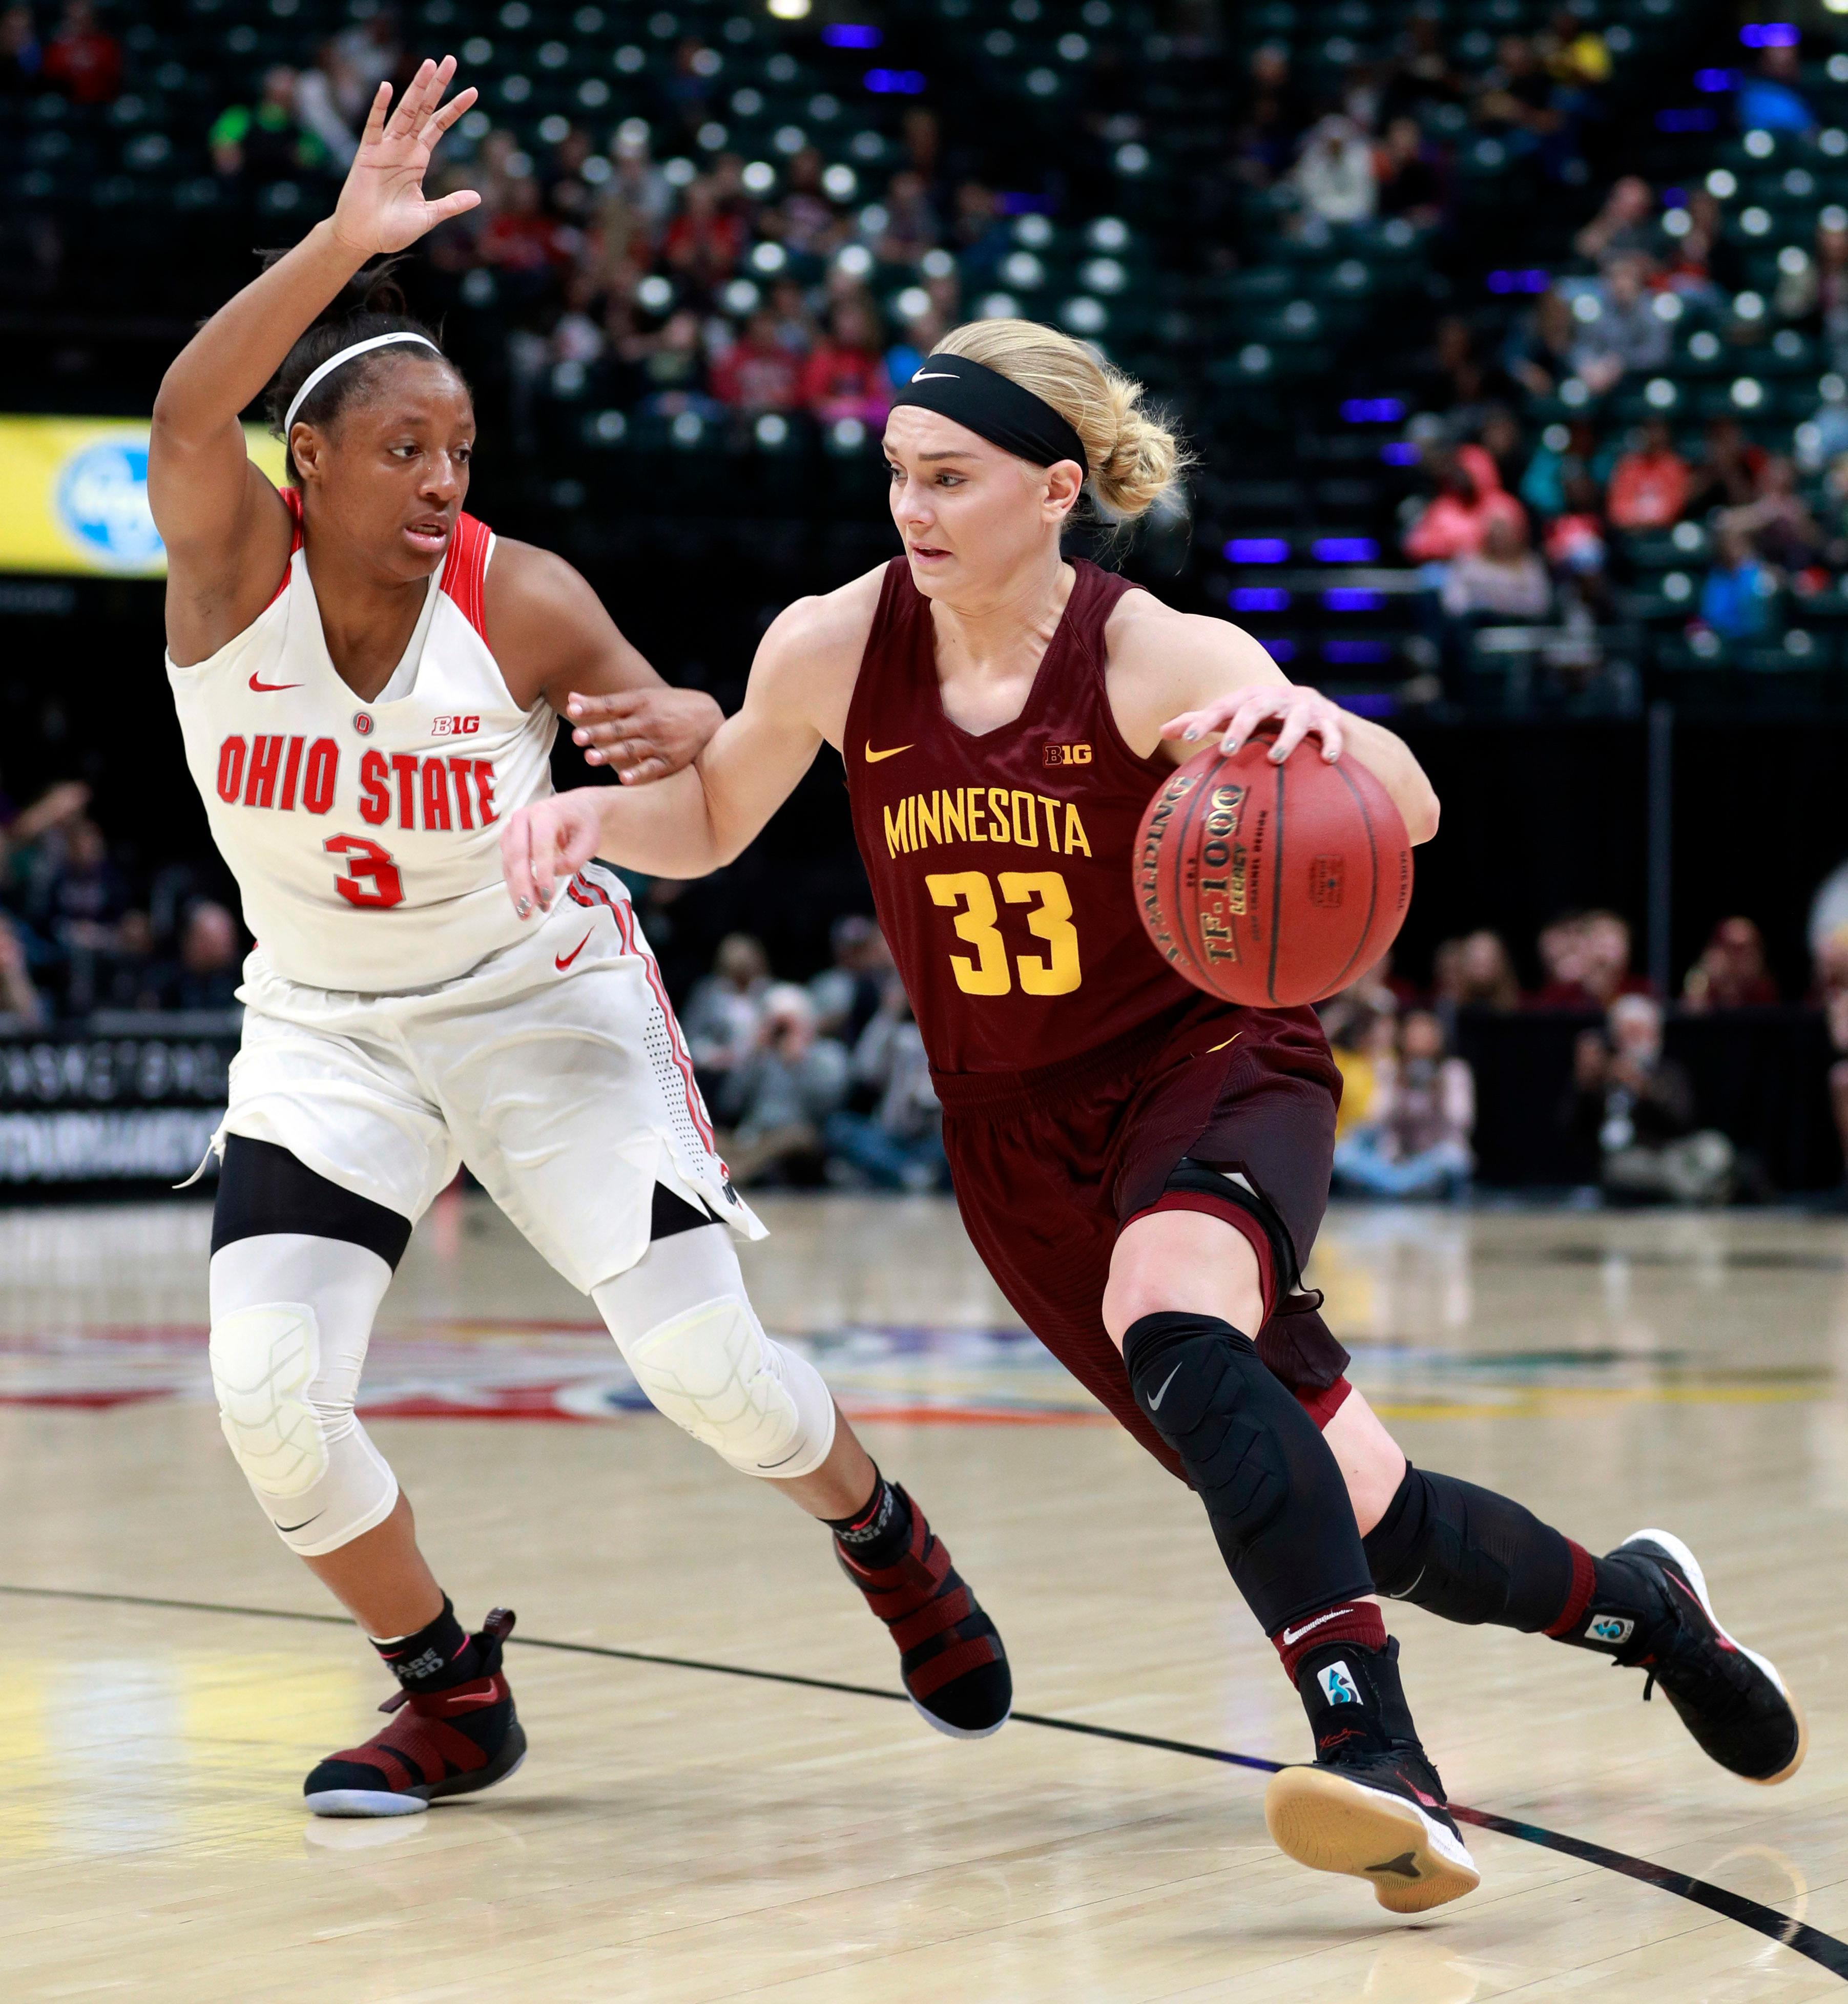 Minnesota guard Carlie Wagner (33) drives against Ohio State guard Kelsey Mitchell during the first half of an NCAA college basketball game in the semifinals of the Big Ten women's tournament Saturday, March 3, 2018, in Indianapolis. (AP Photo/R Brent Smith)